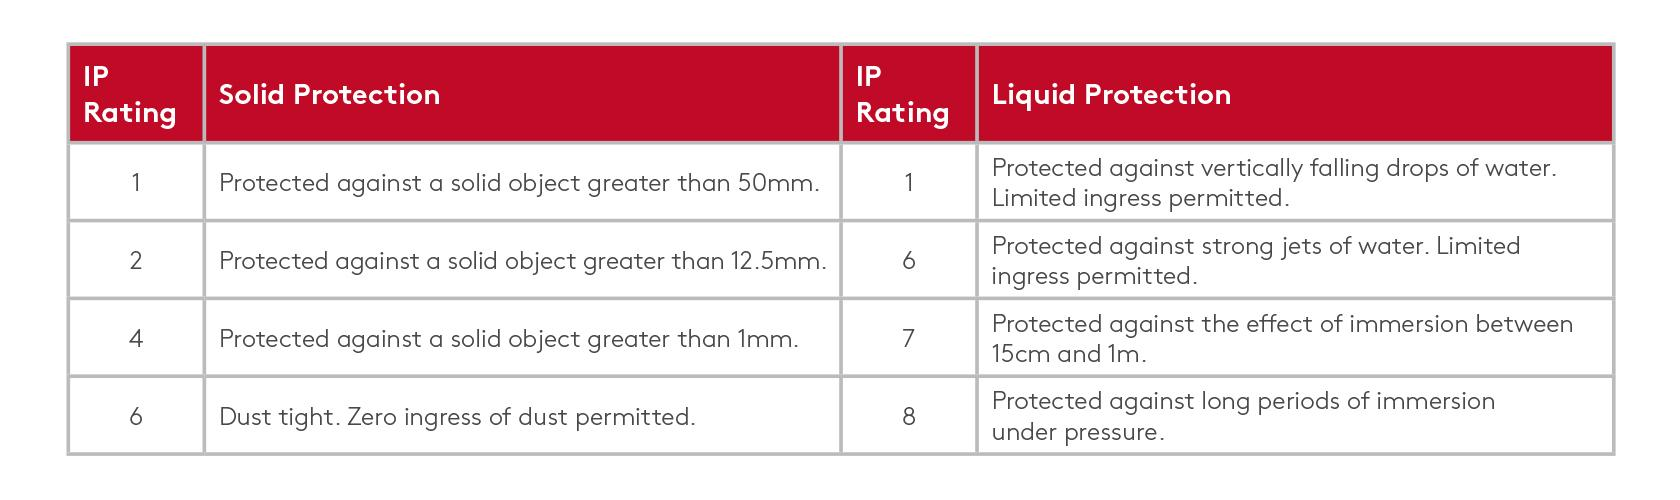 IP Rating table infographic